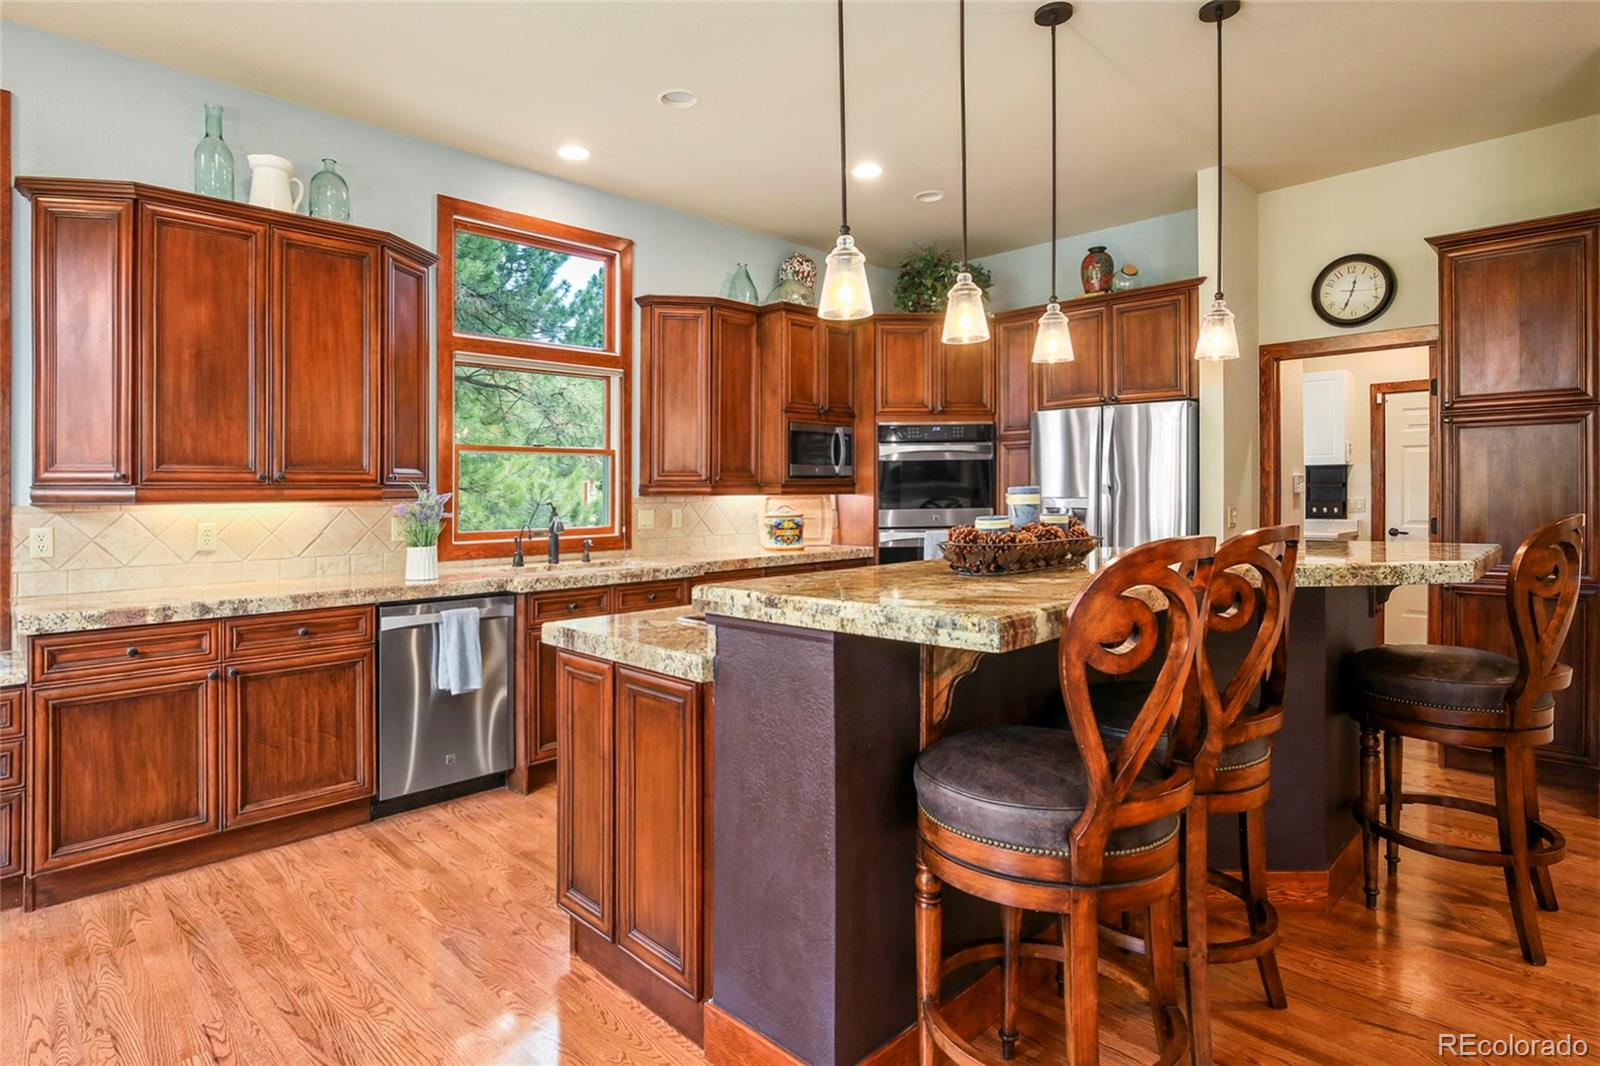 MLS# 8150320 - 11 - 1198 Forest Trails Drive, Castle Pines, CO 80108